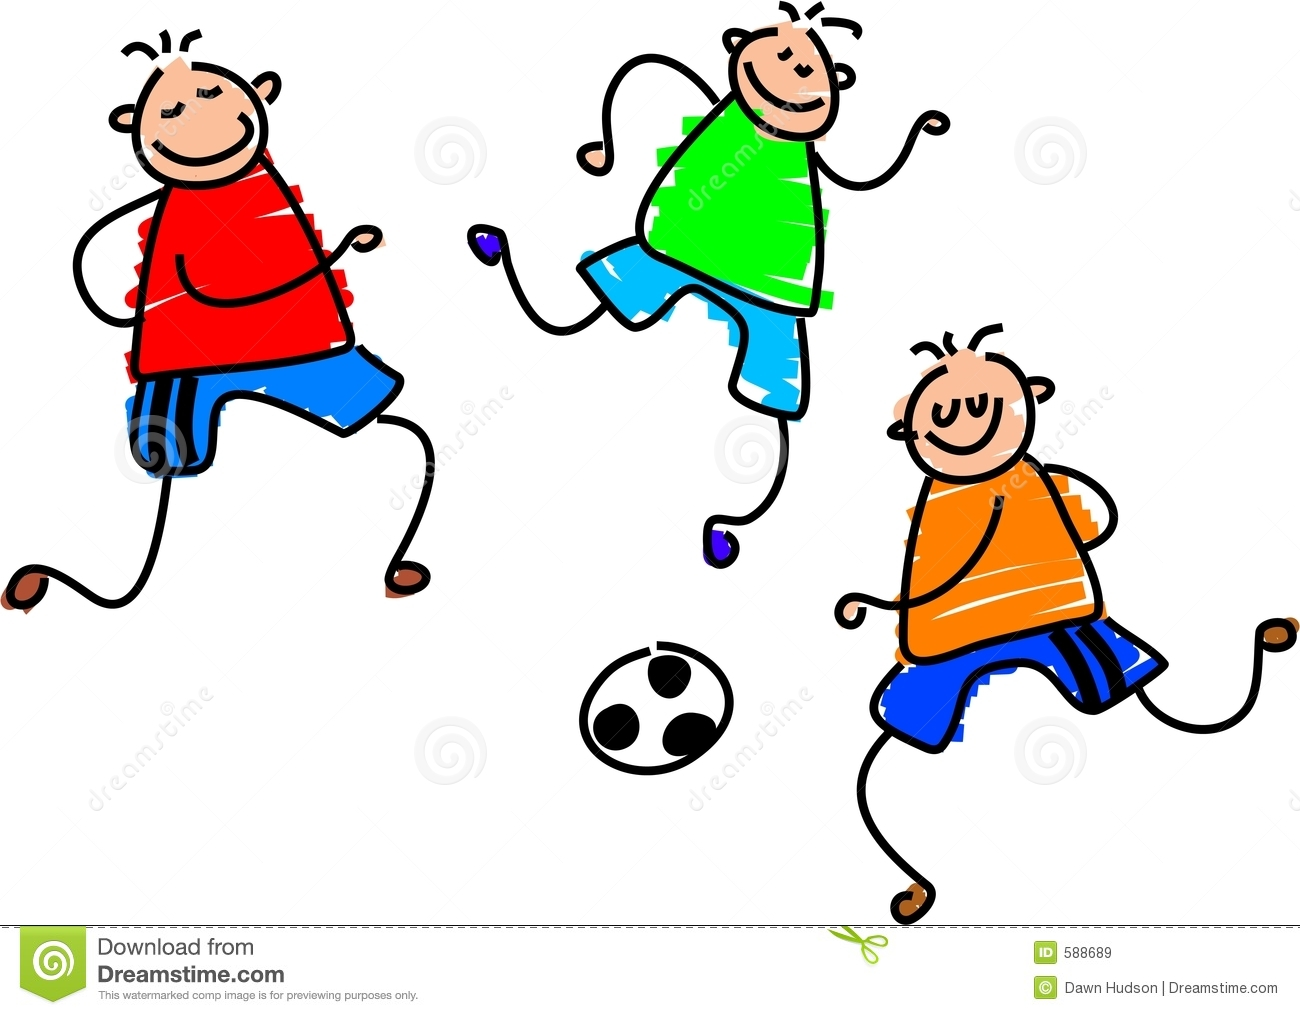 Soccer game stock vector. Illustration of activities, leisure - 588689